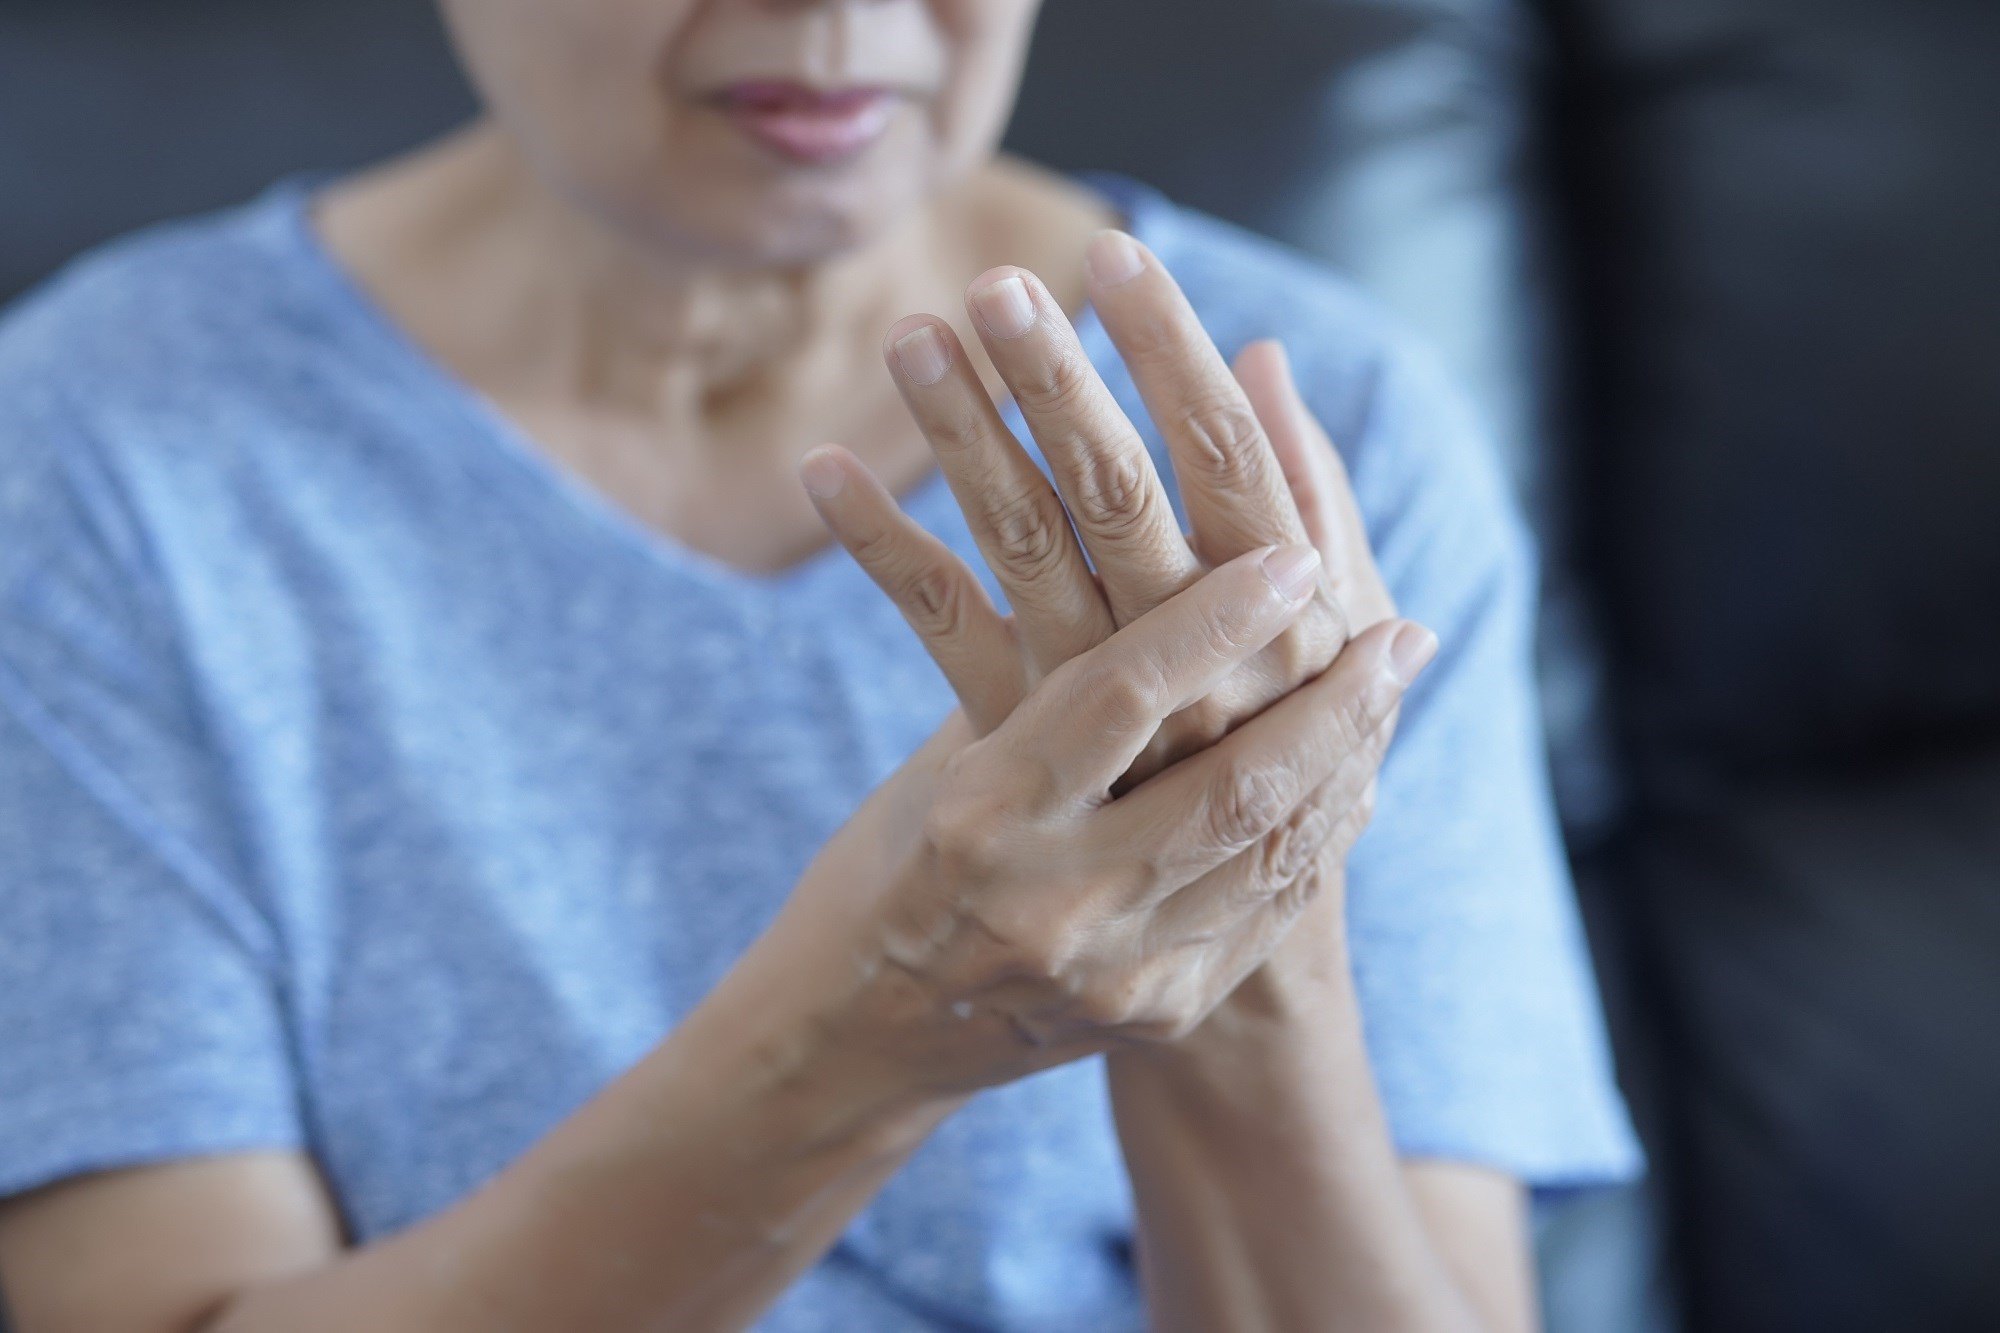 Pain Catastrophizing Decreases in Rheumatoid Arthritis After DMARD Initiation